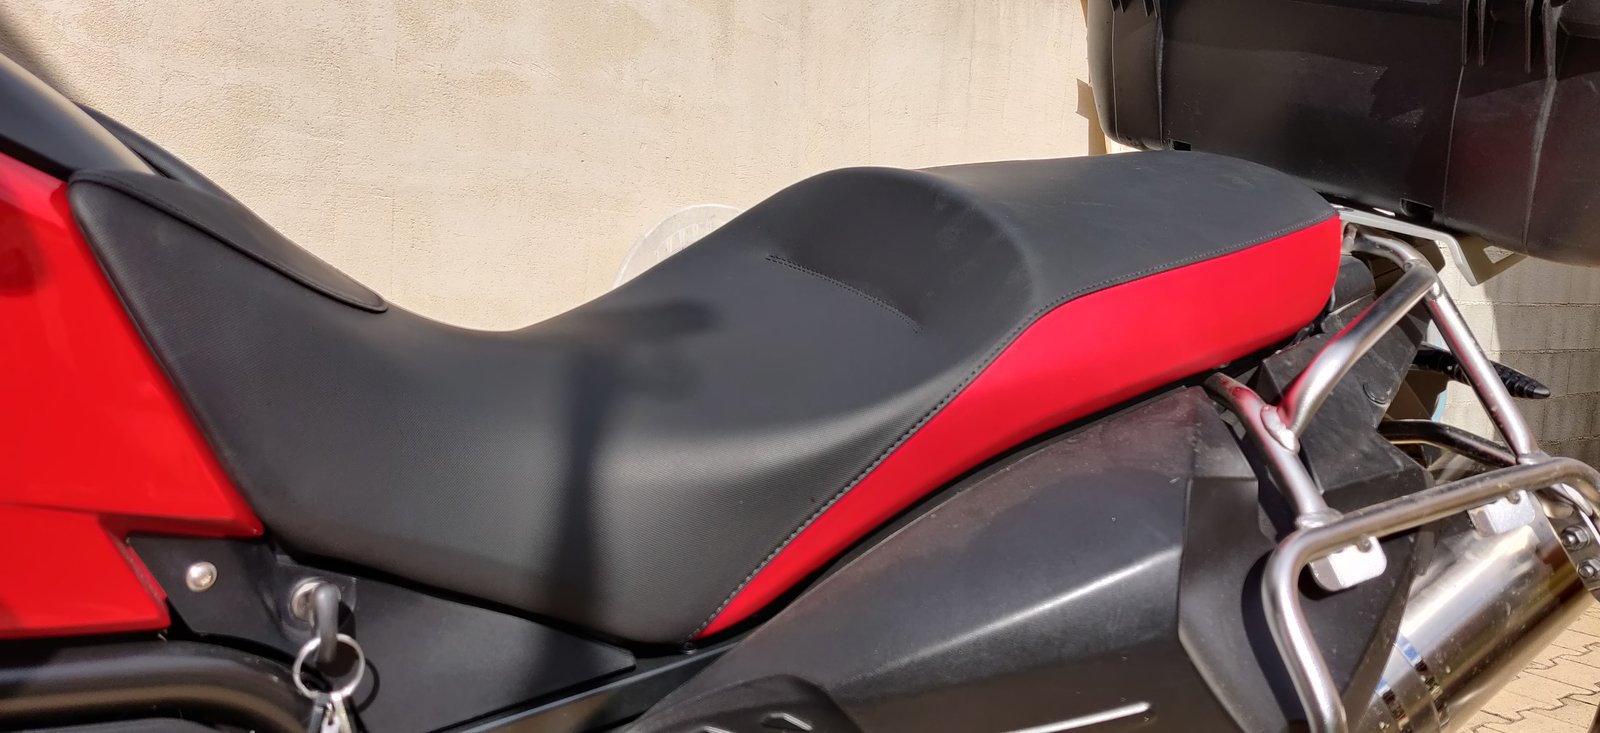 [VENDS] selle F800 GS rouge 201010120030802552